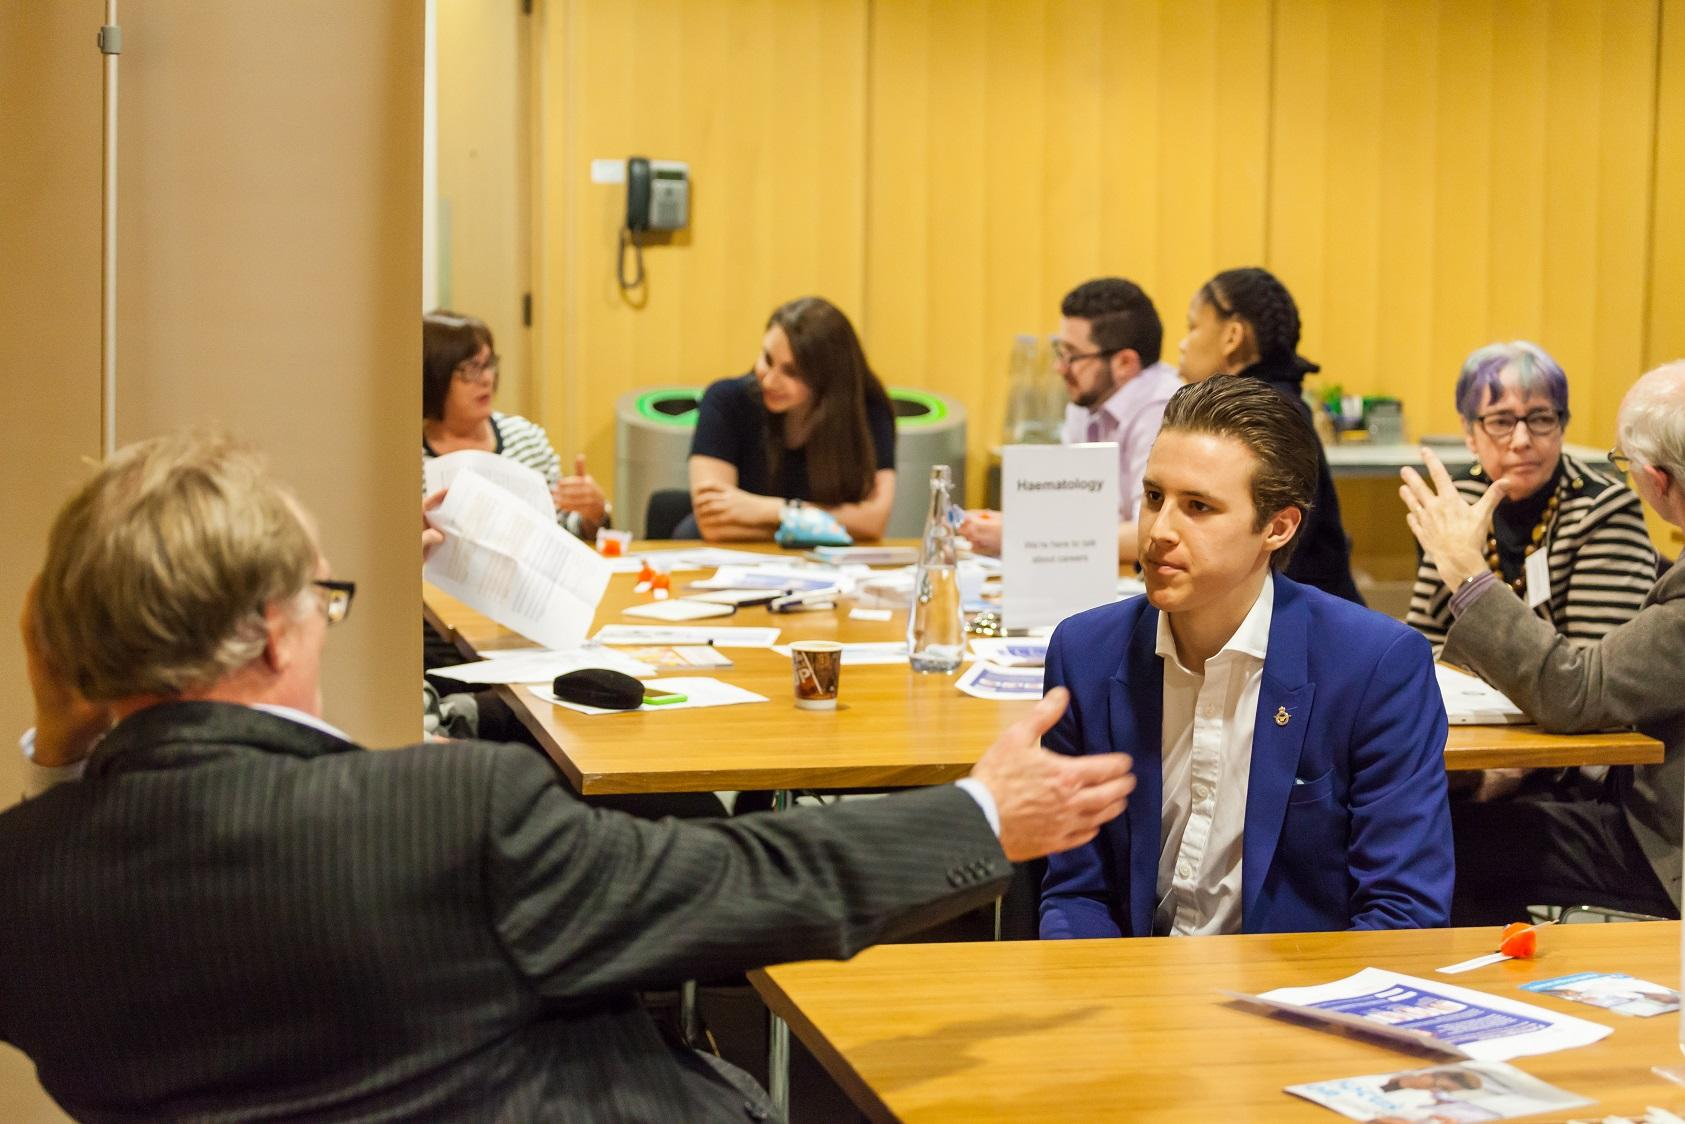 The networking room at Careers and Ideas